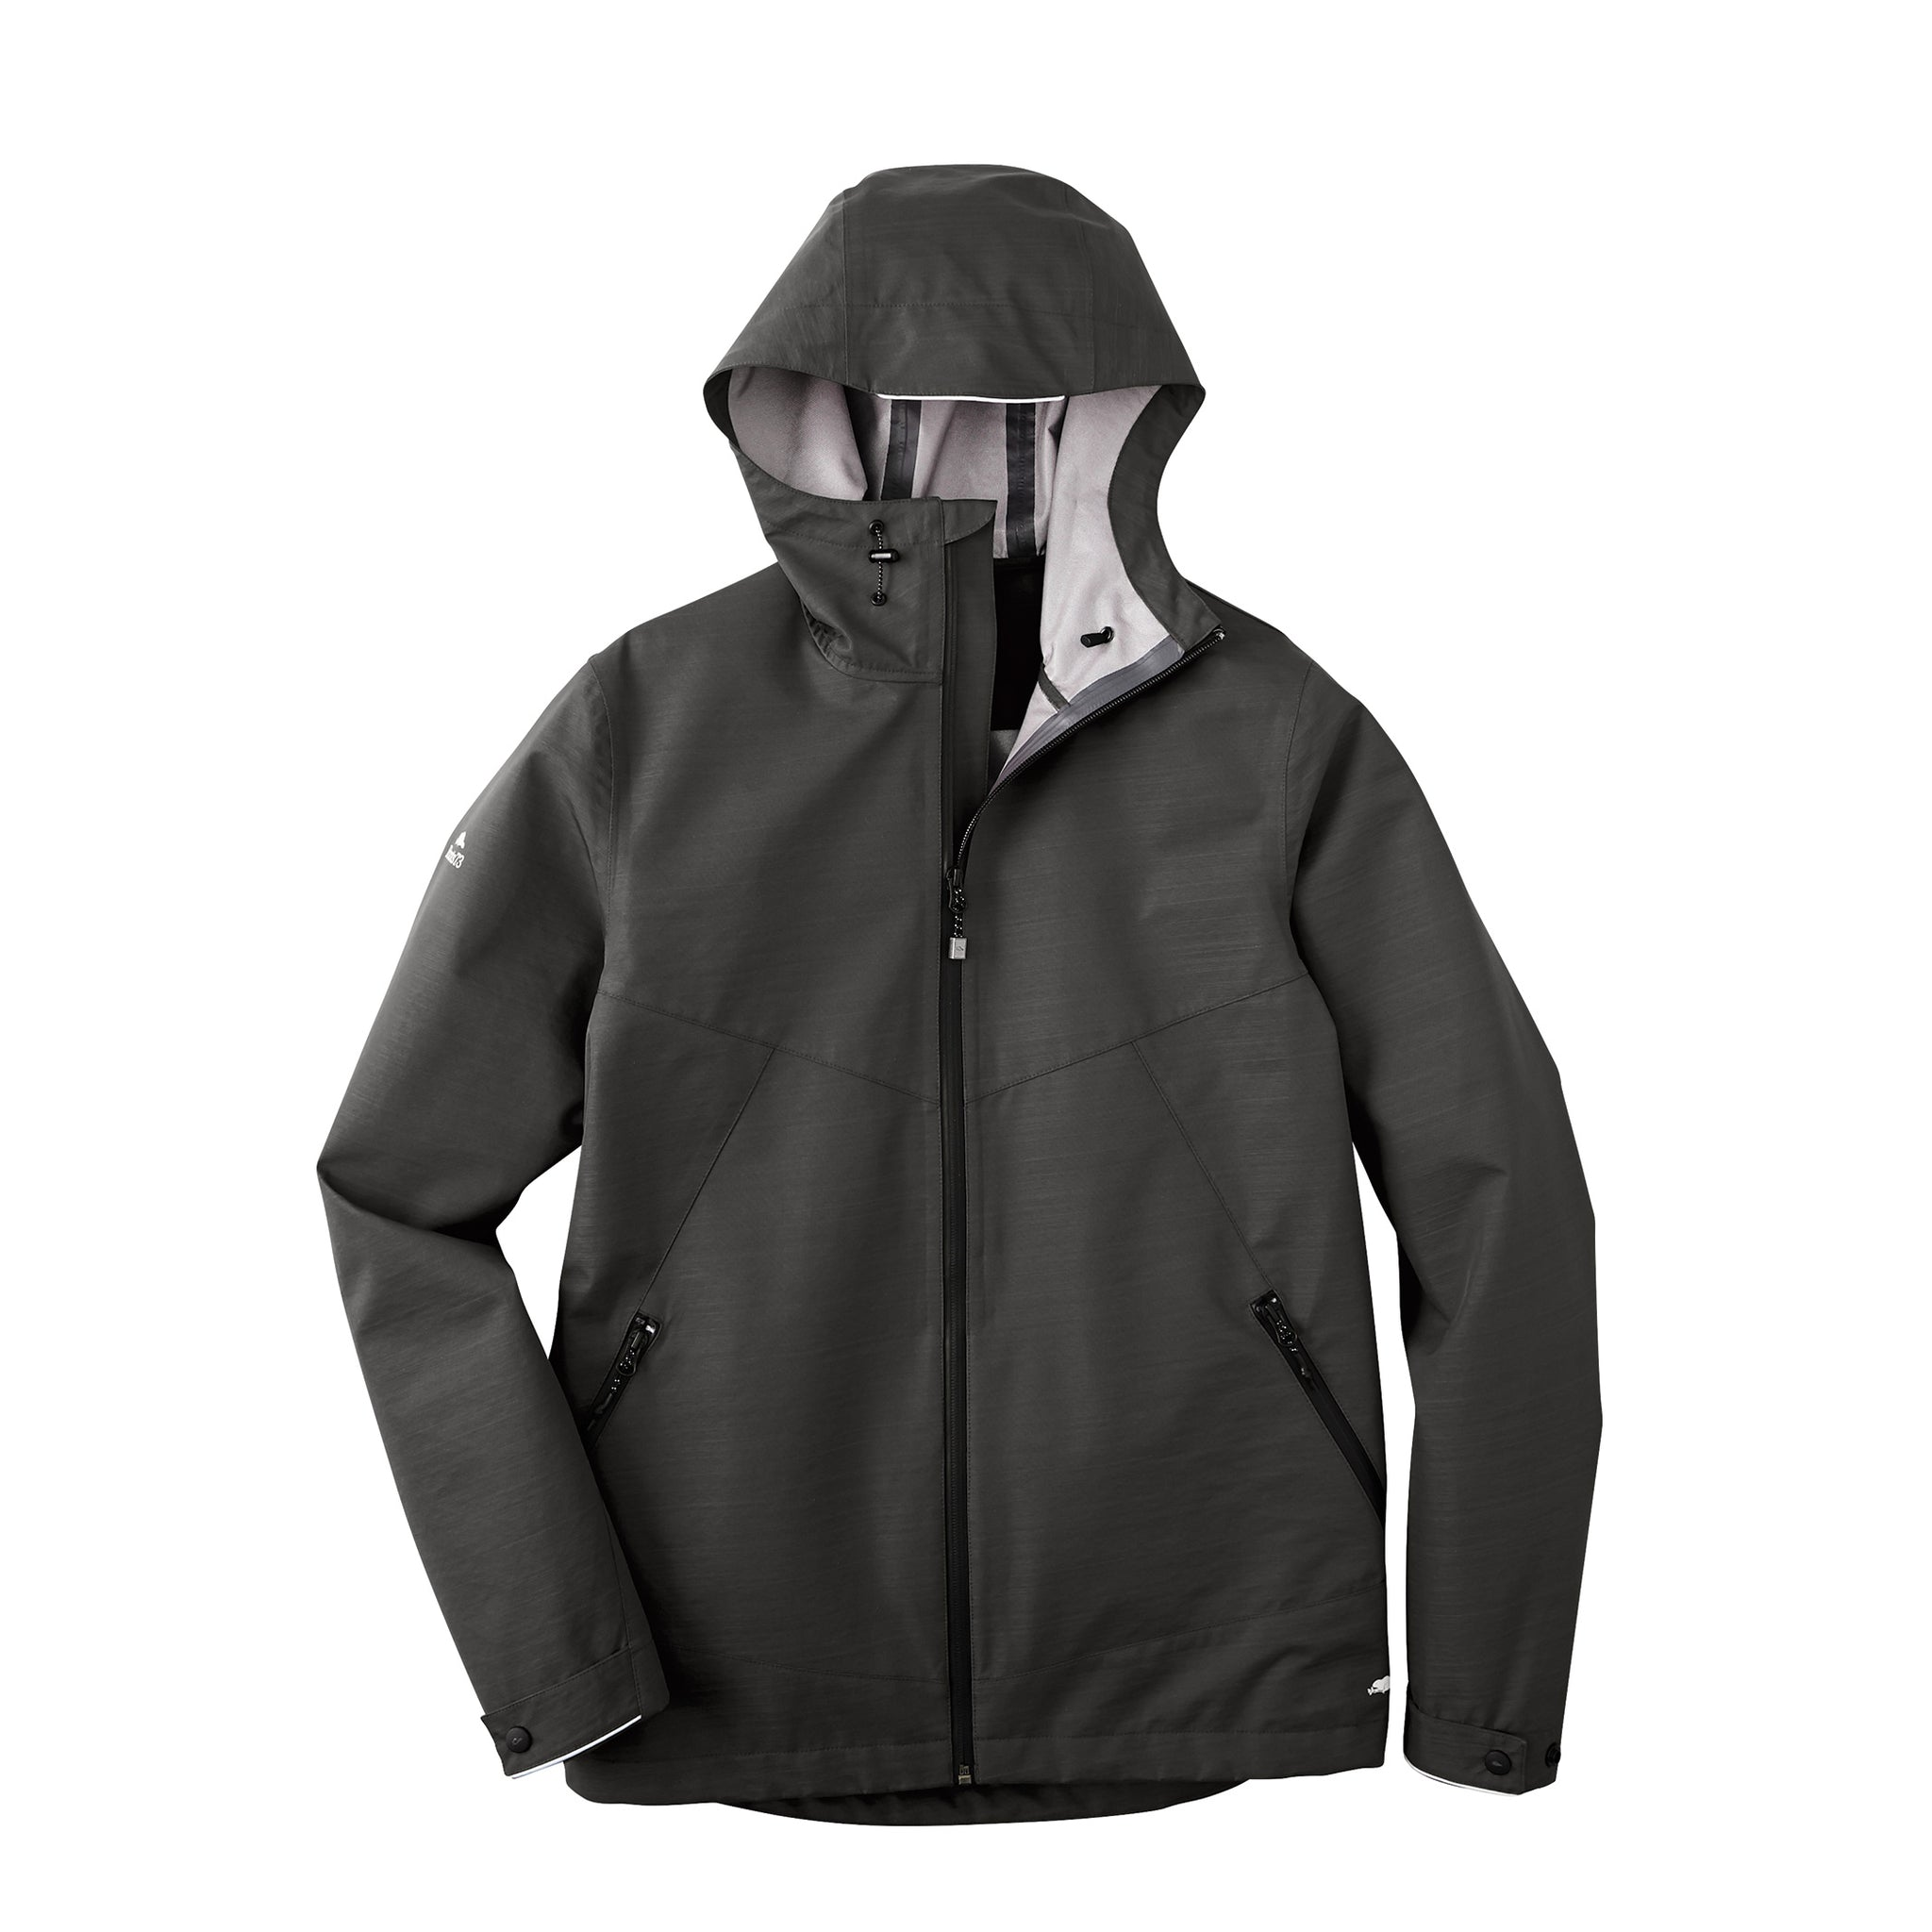 ROOTS73 MEN'S SHORELINE SOFT SHELL JACKET